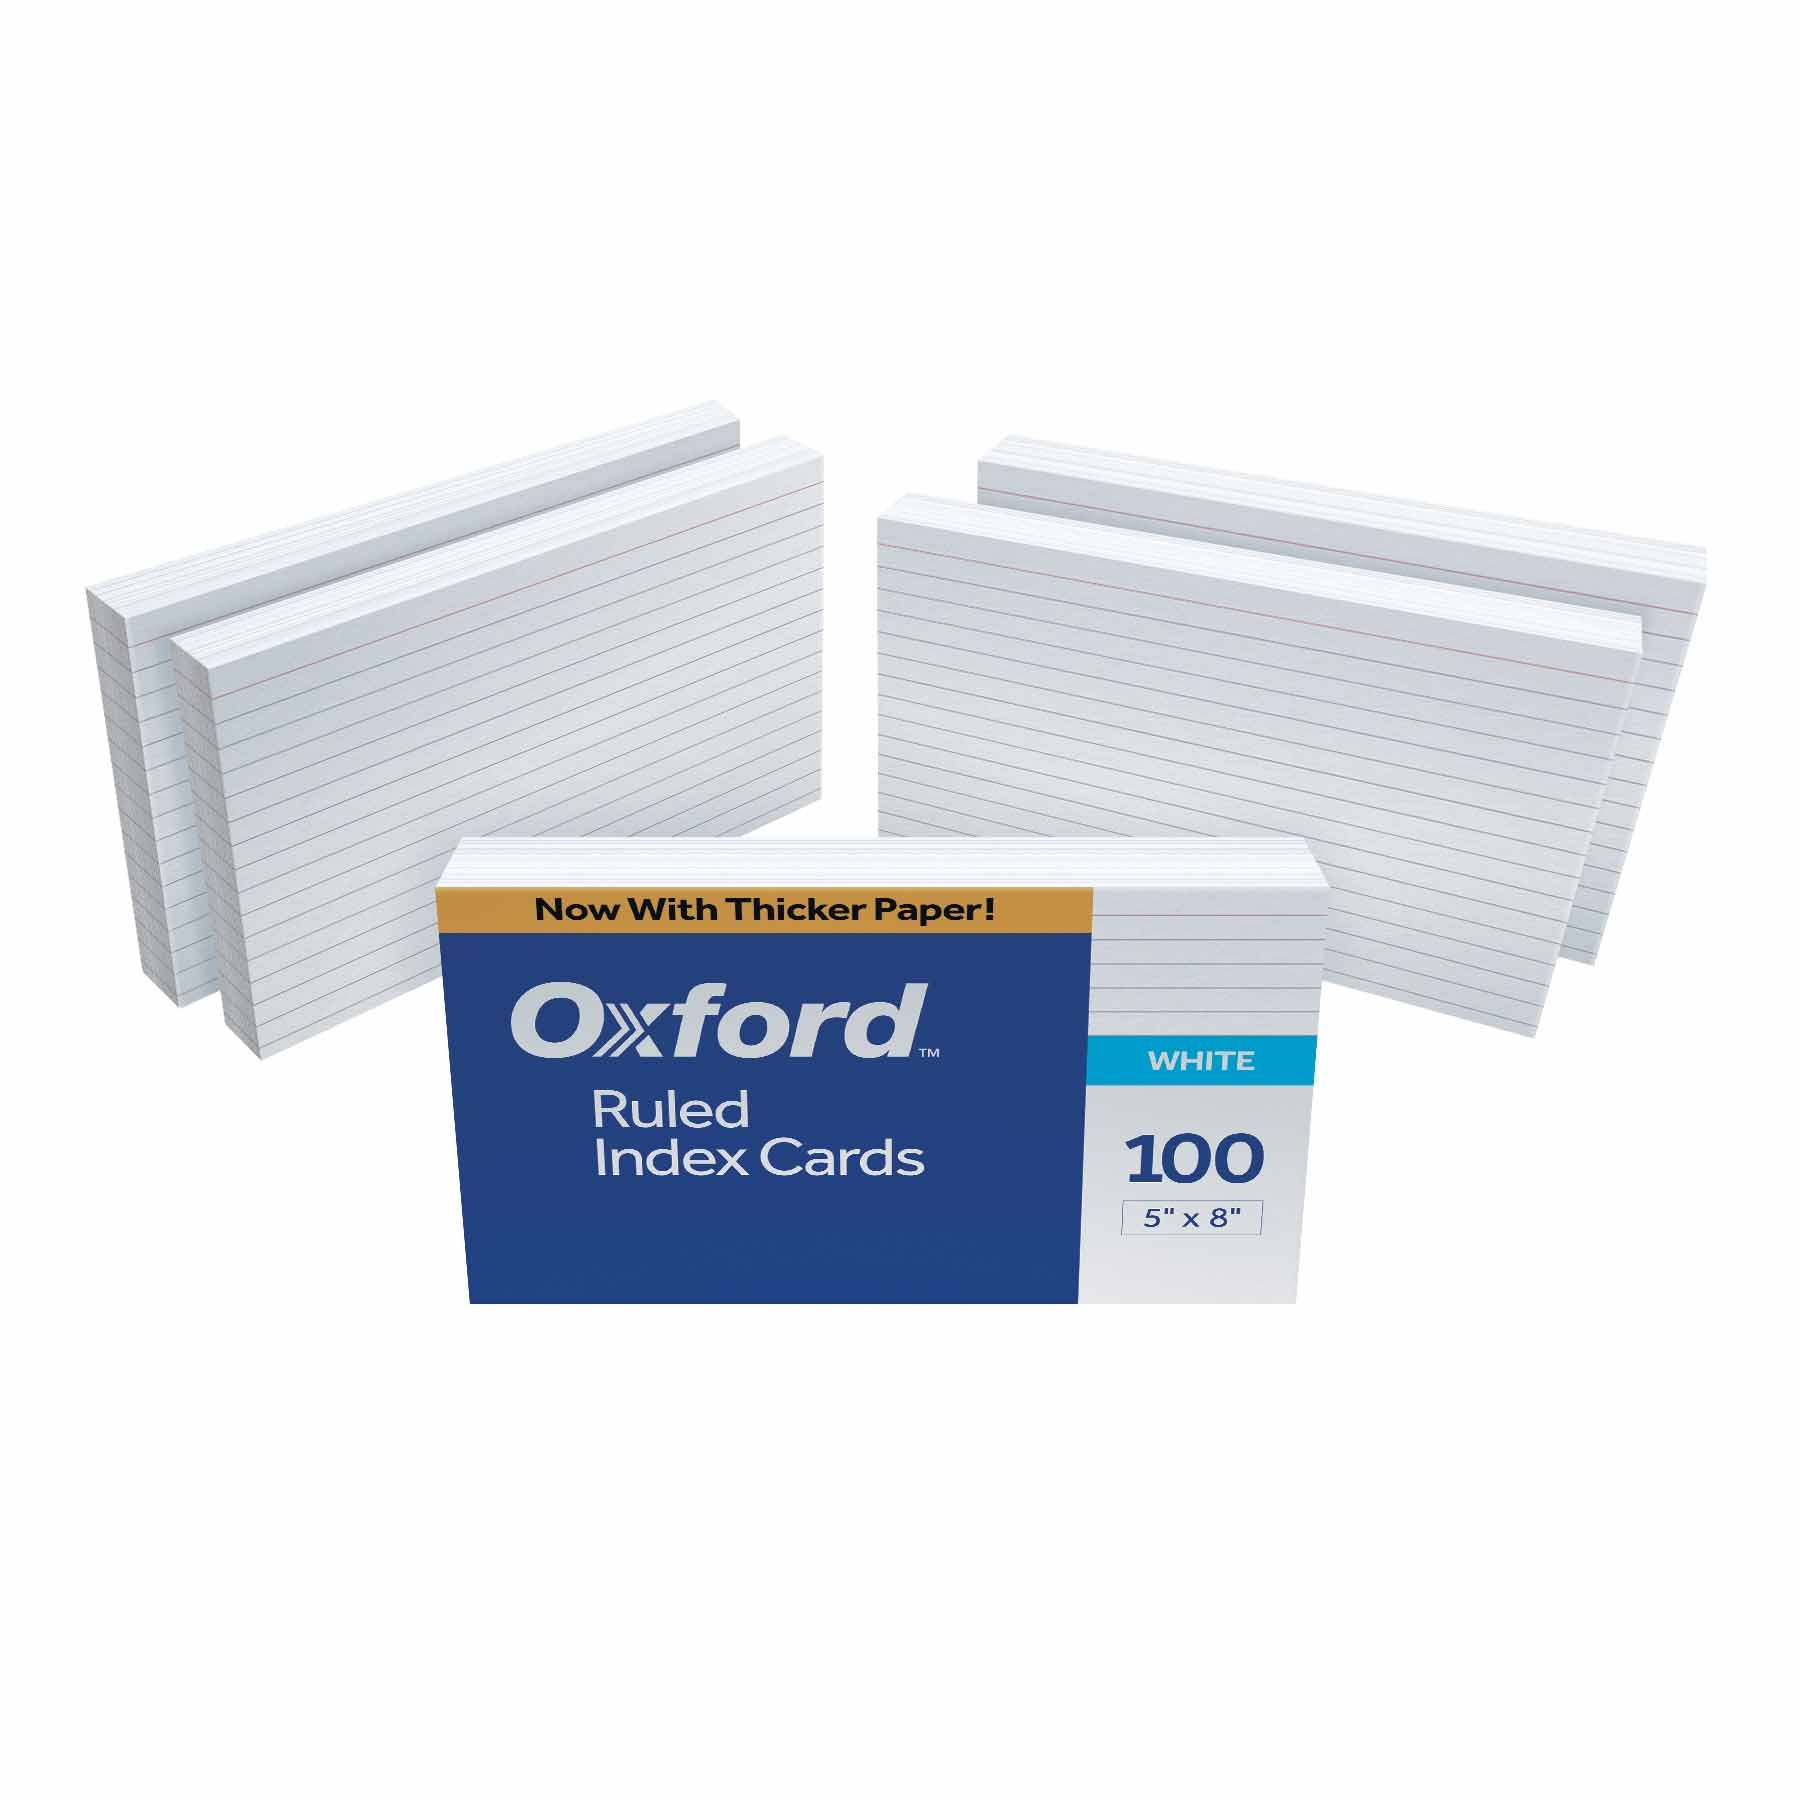 Oxford Ruled Index Cards, 5'' x 8'', White, 500 Cards (5 Packs of 100) (51) by Oxford